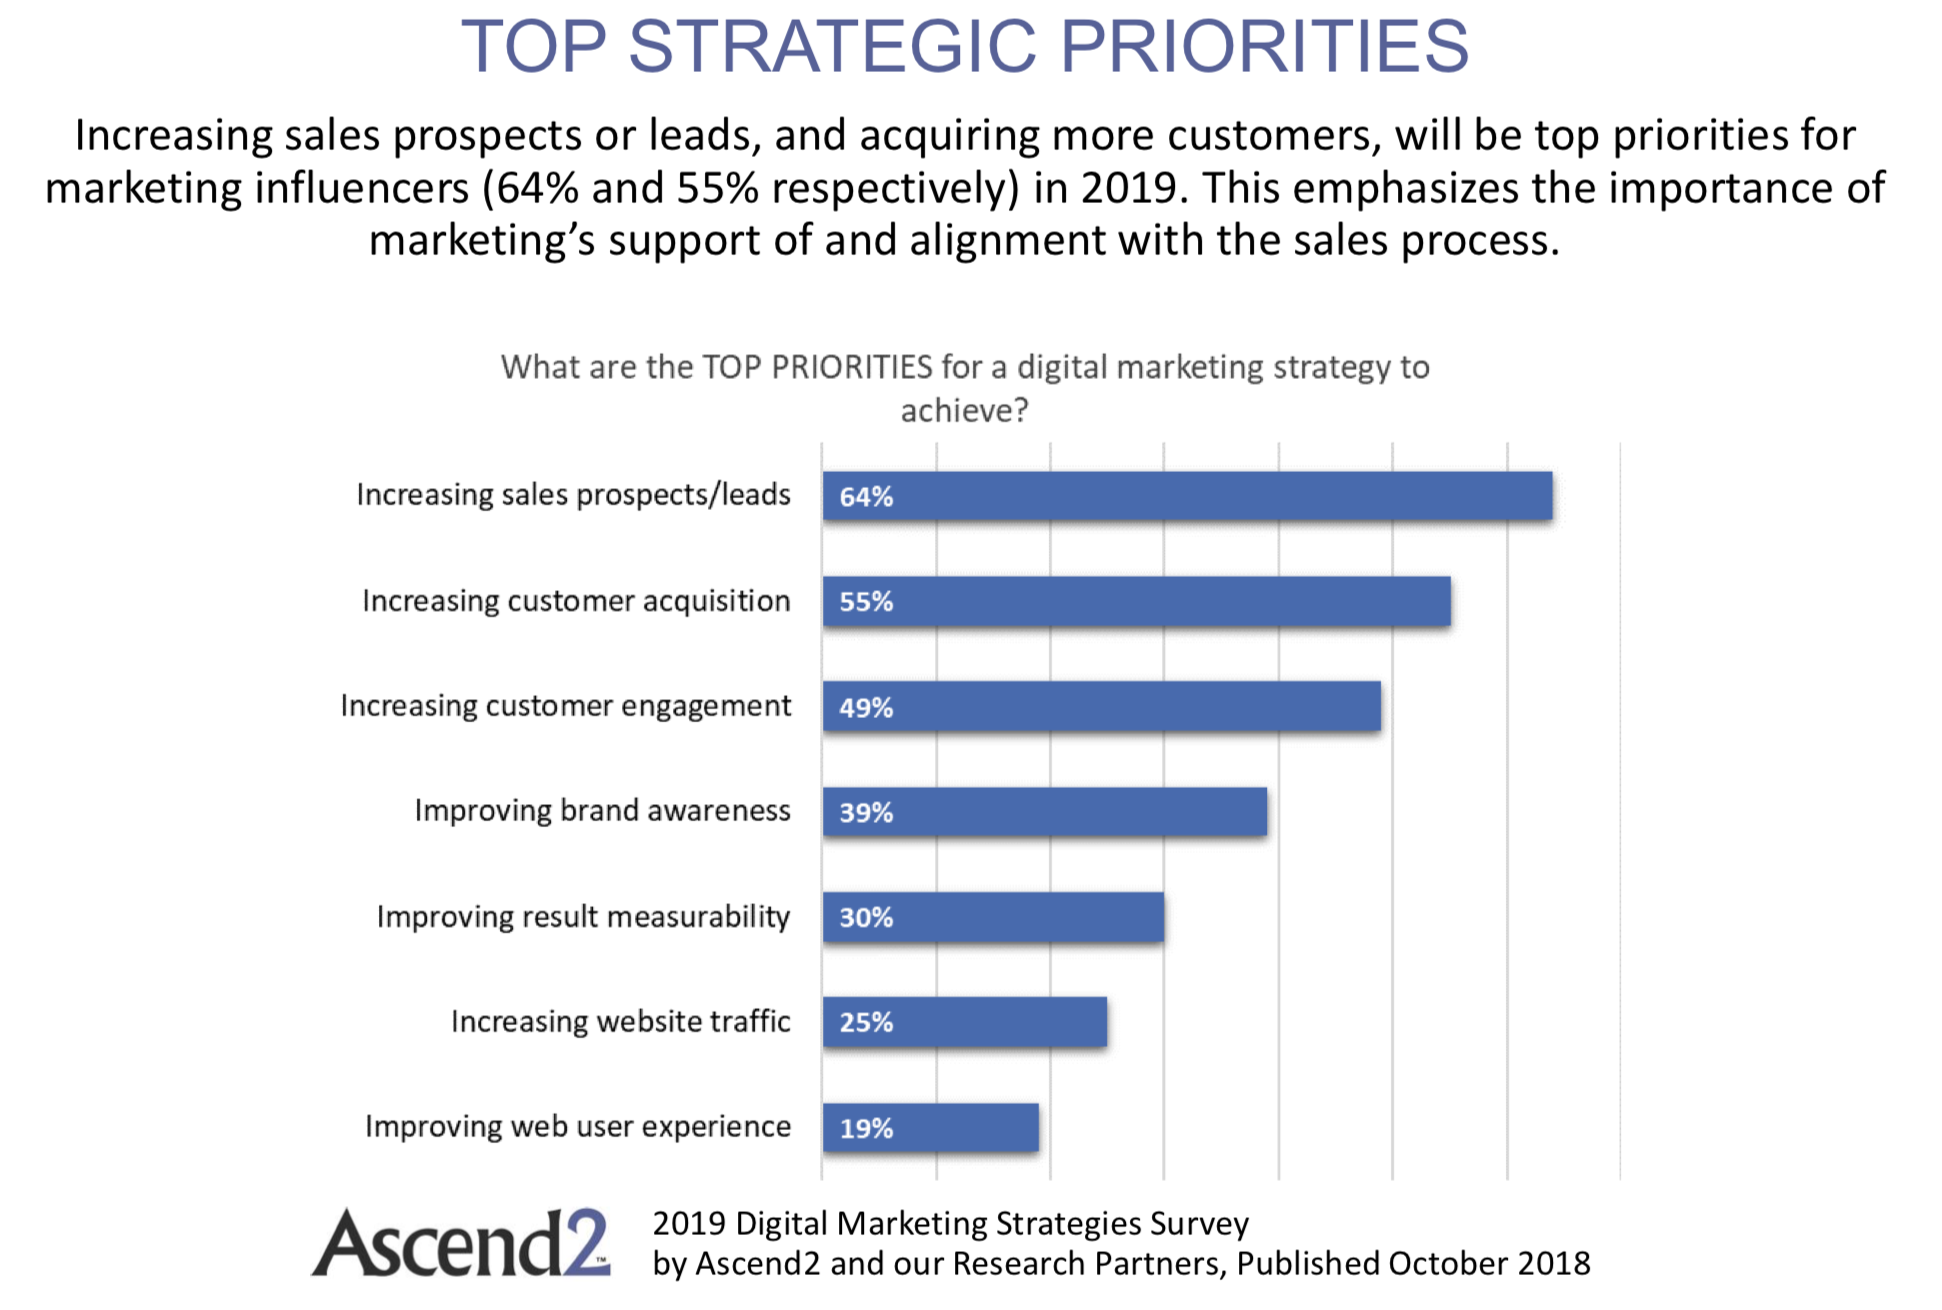 strategic priorities 2019